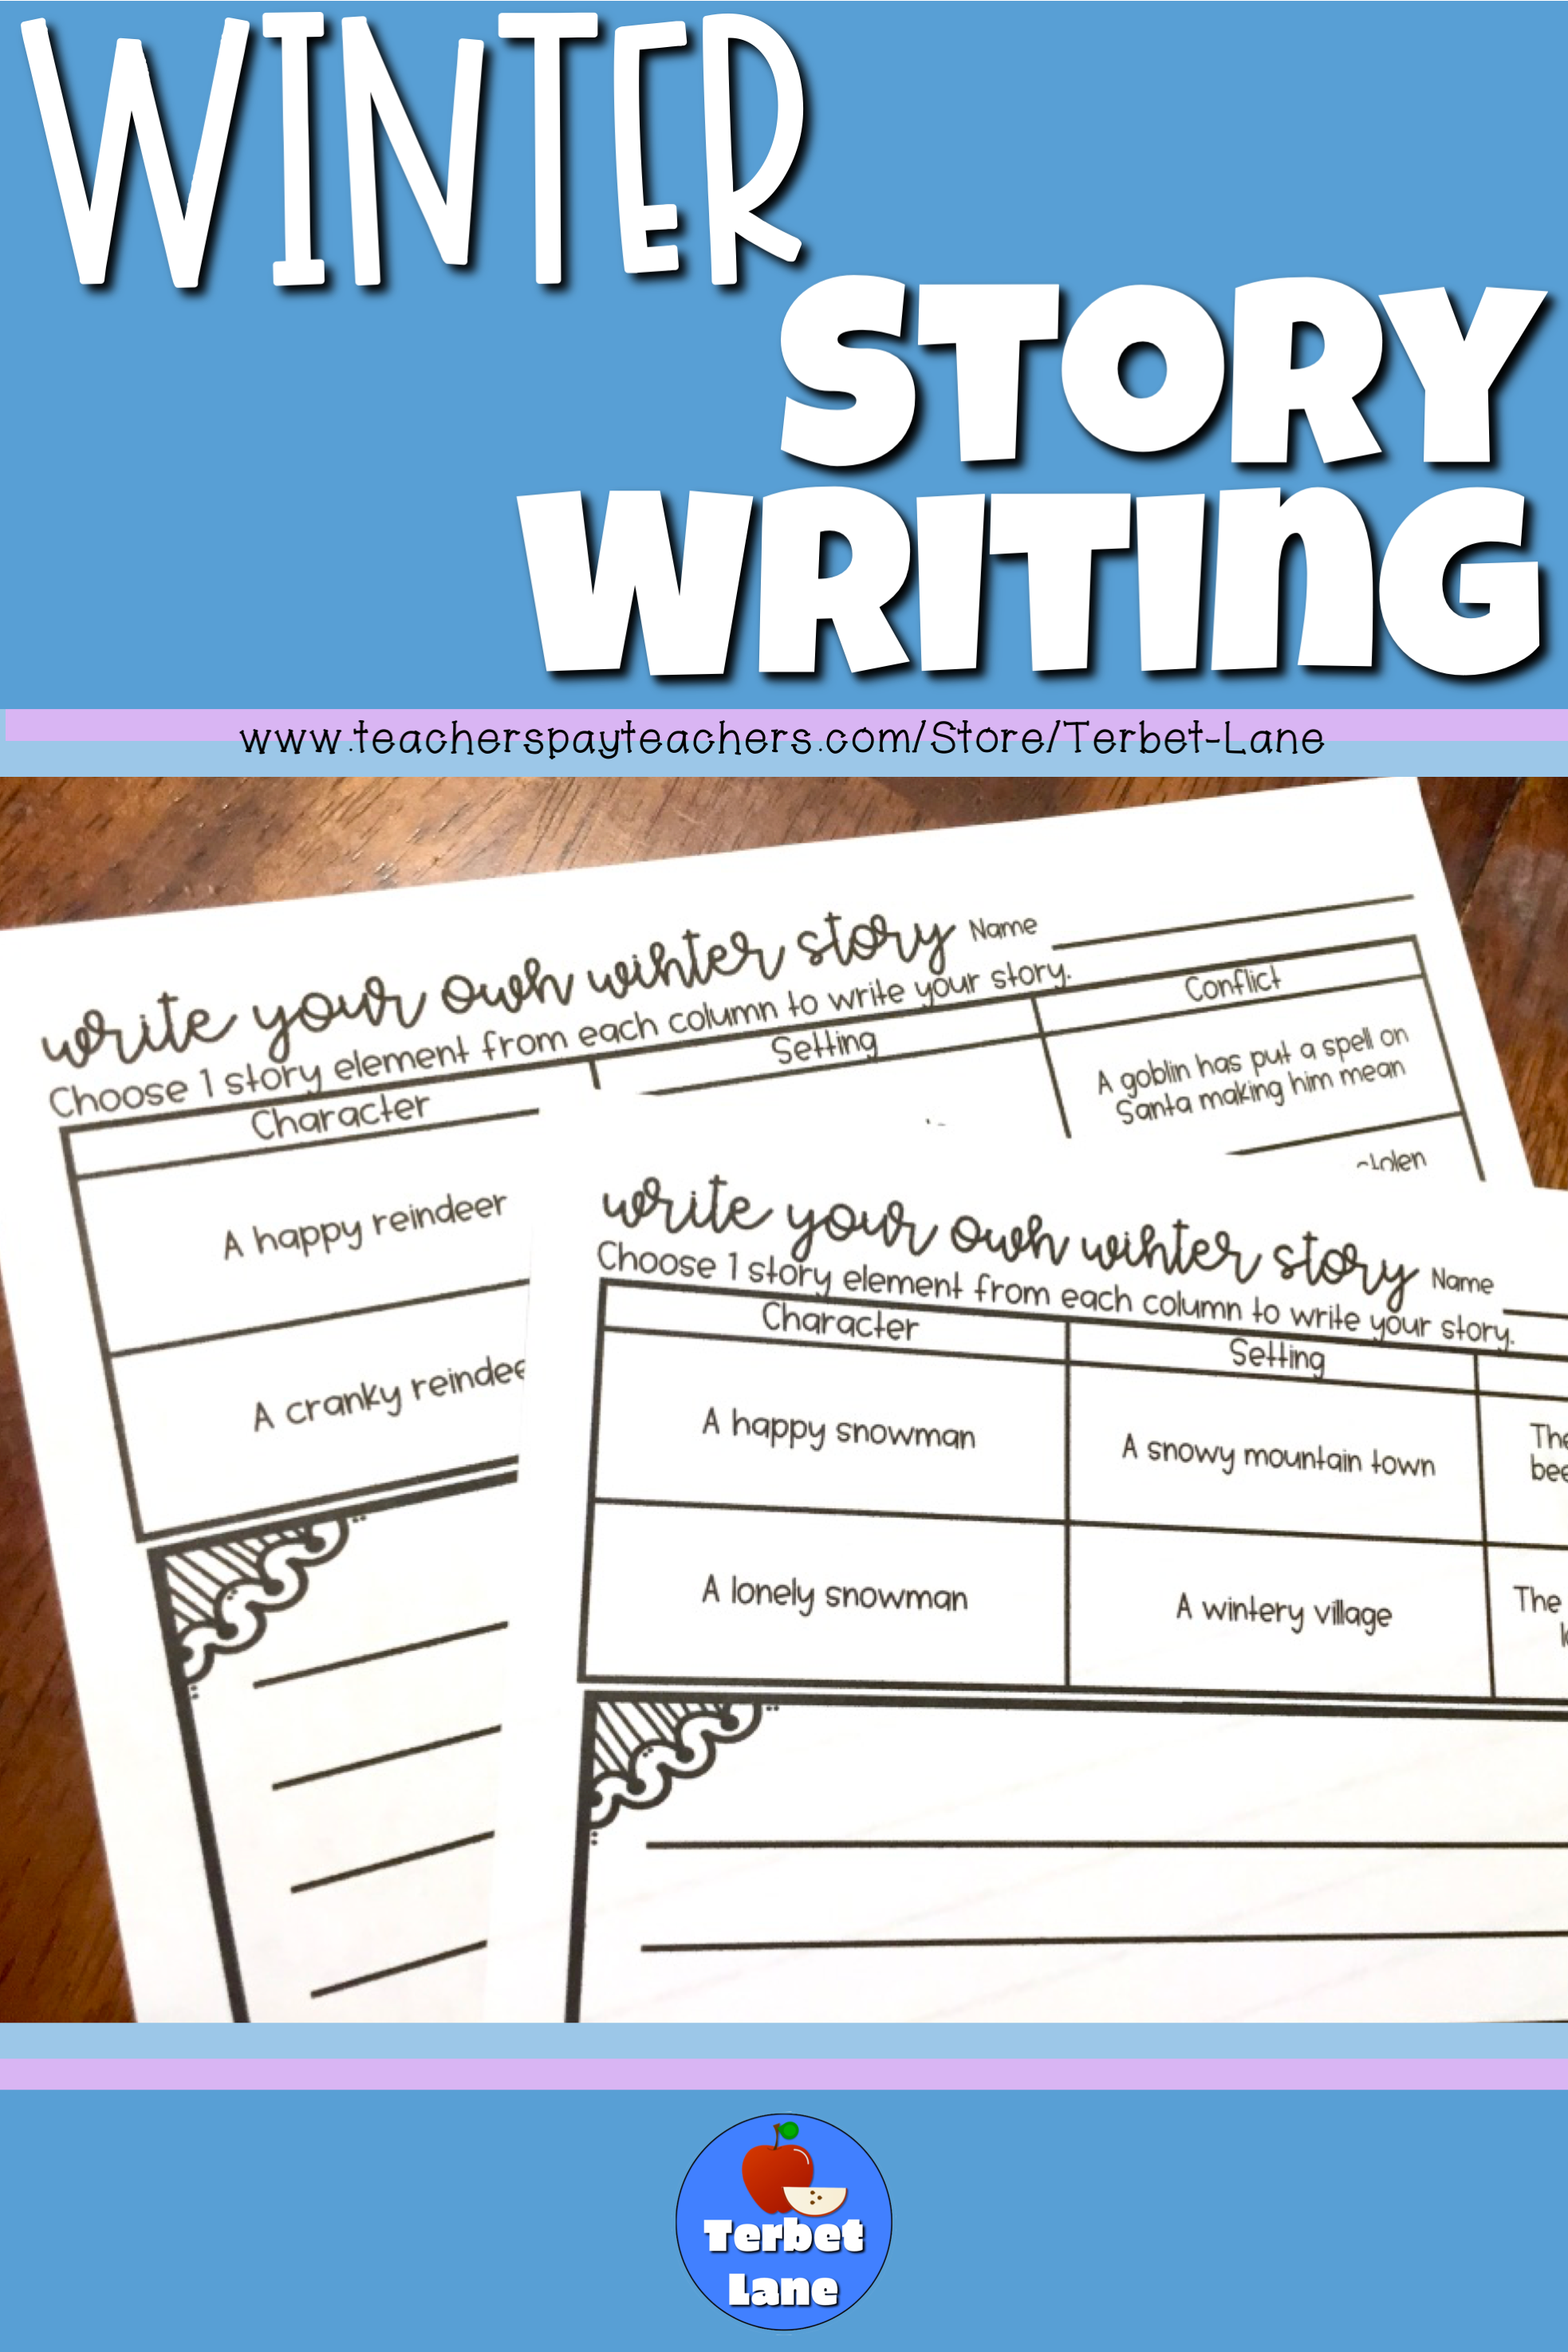 Winter Story Writing Worksheets